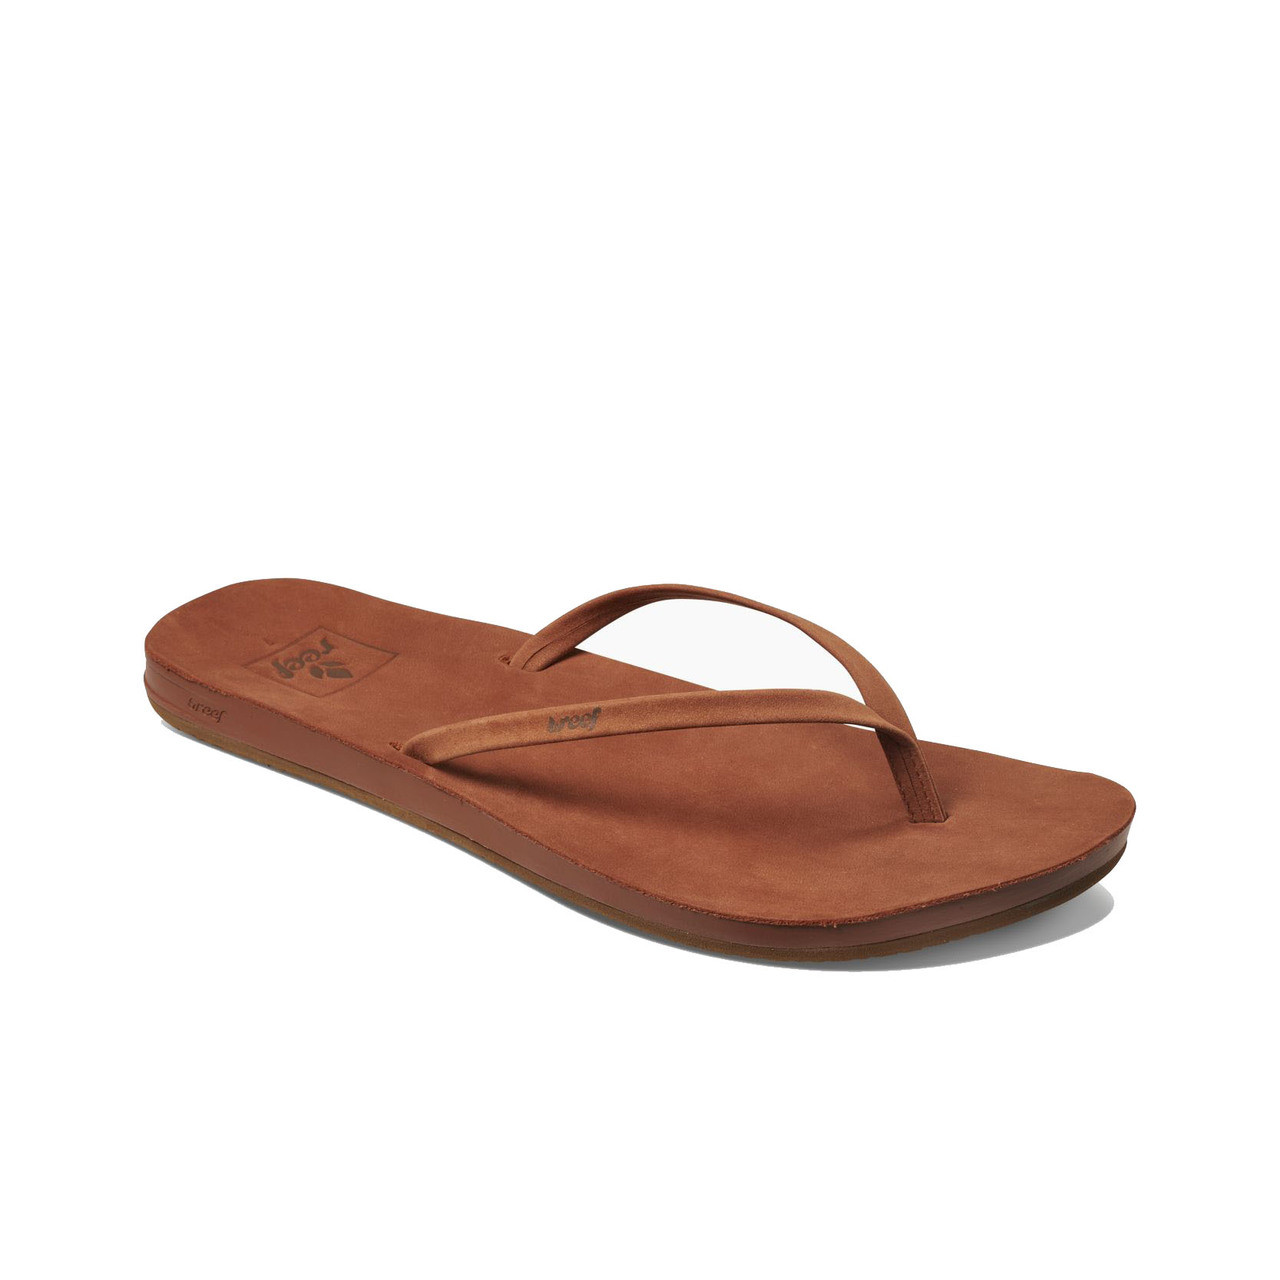 e7eee06427bc Reef Women s Flip Flops - Cushion Bounce Slim LE - Cocoa - Surf and Dirt